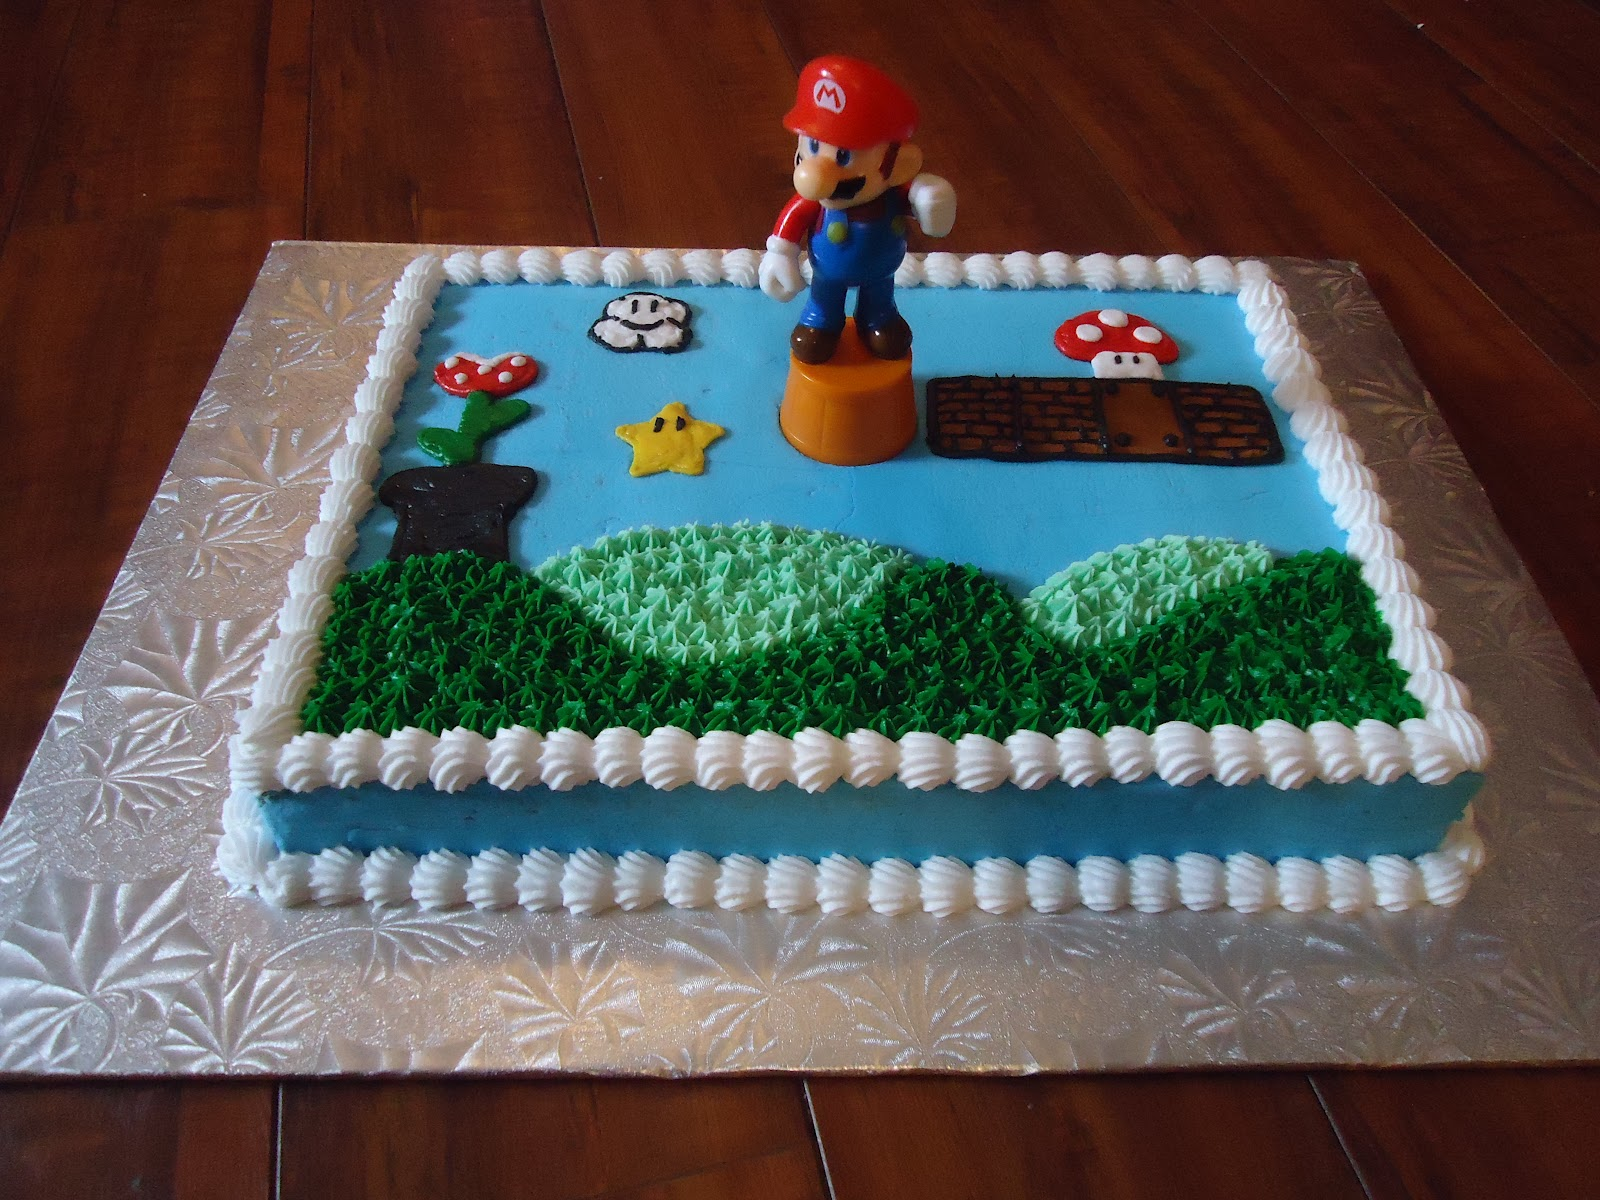 Miraculous Mario Cakes Decoration Ideas Little Birthday Cakes Funny Birthday Cards Online Alyptdamsfinfo